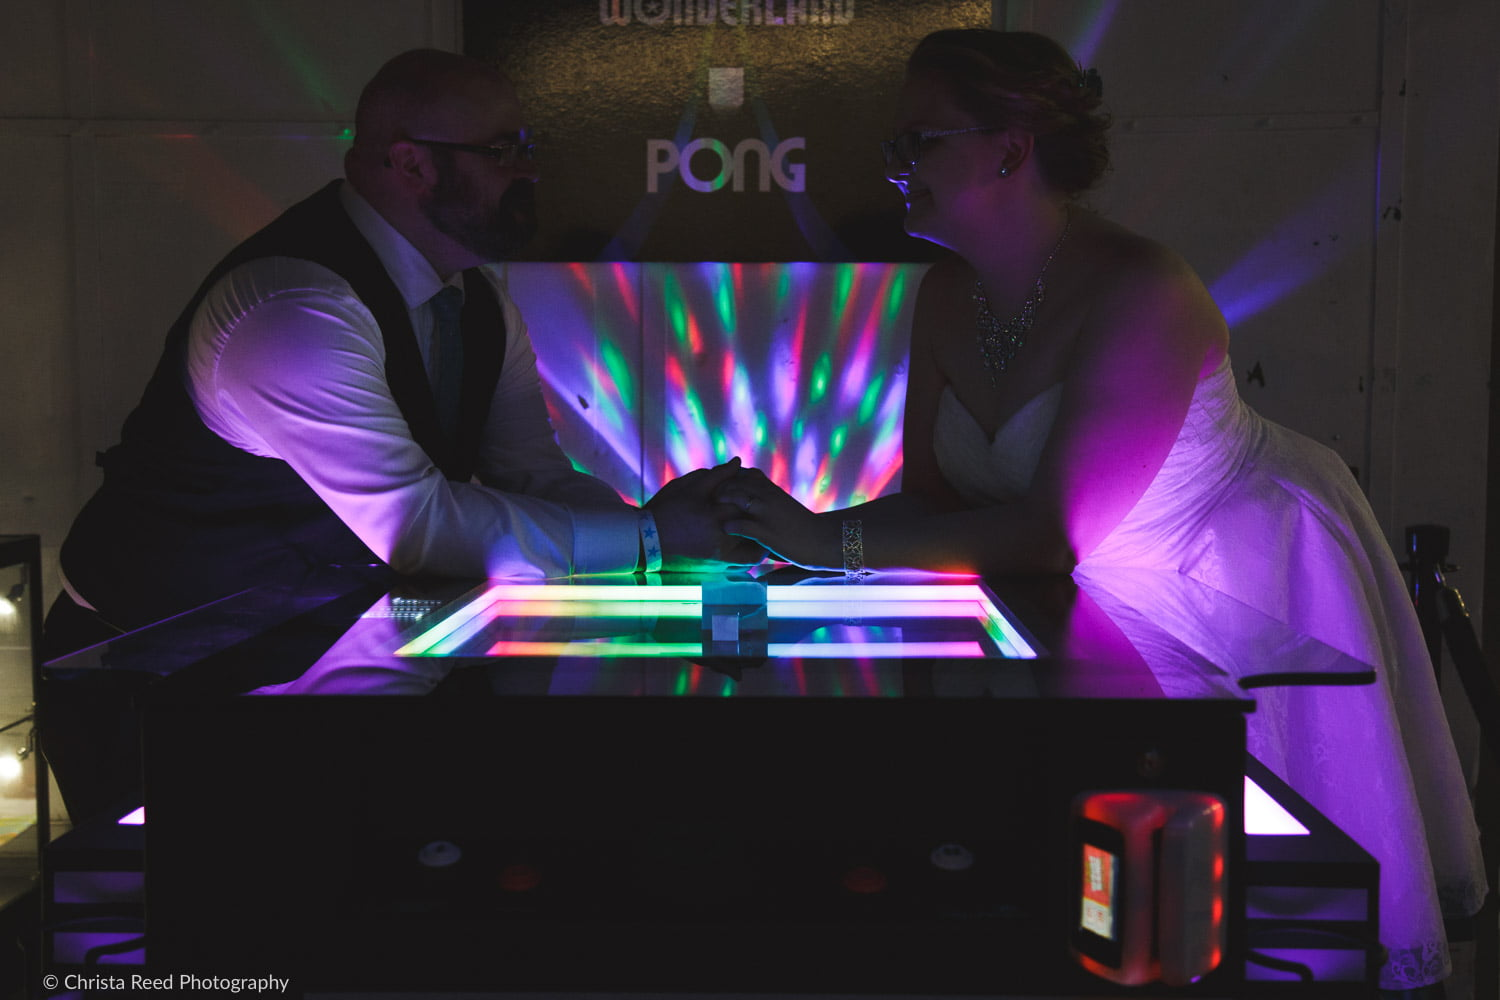 having a pong game at your wedding